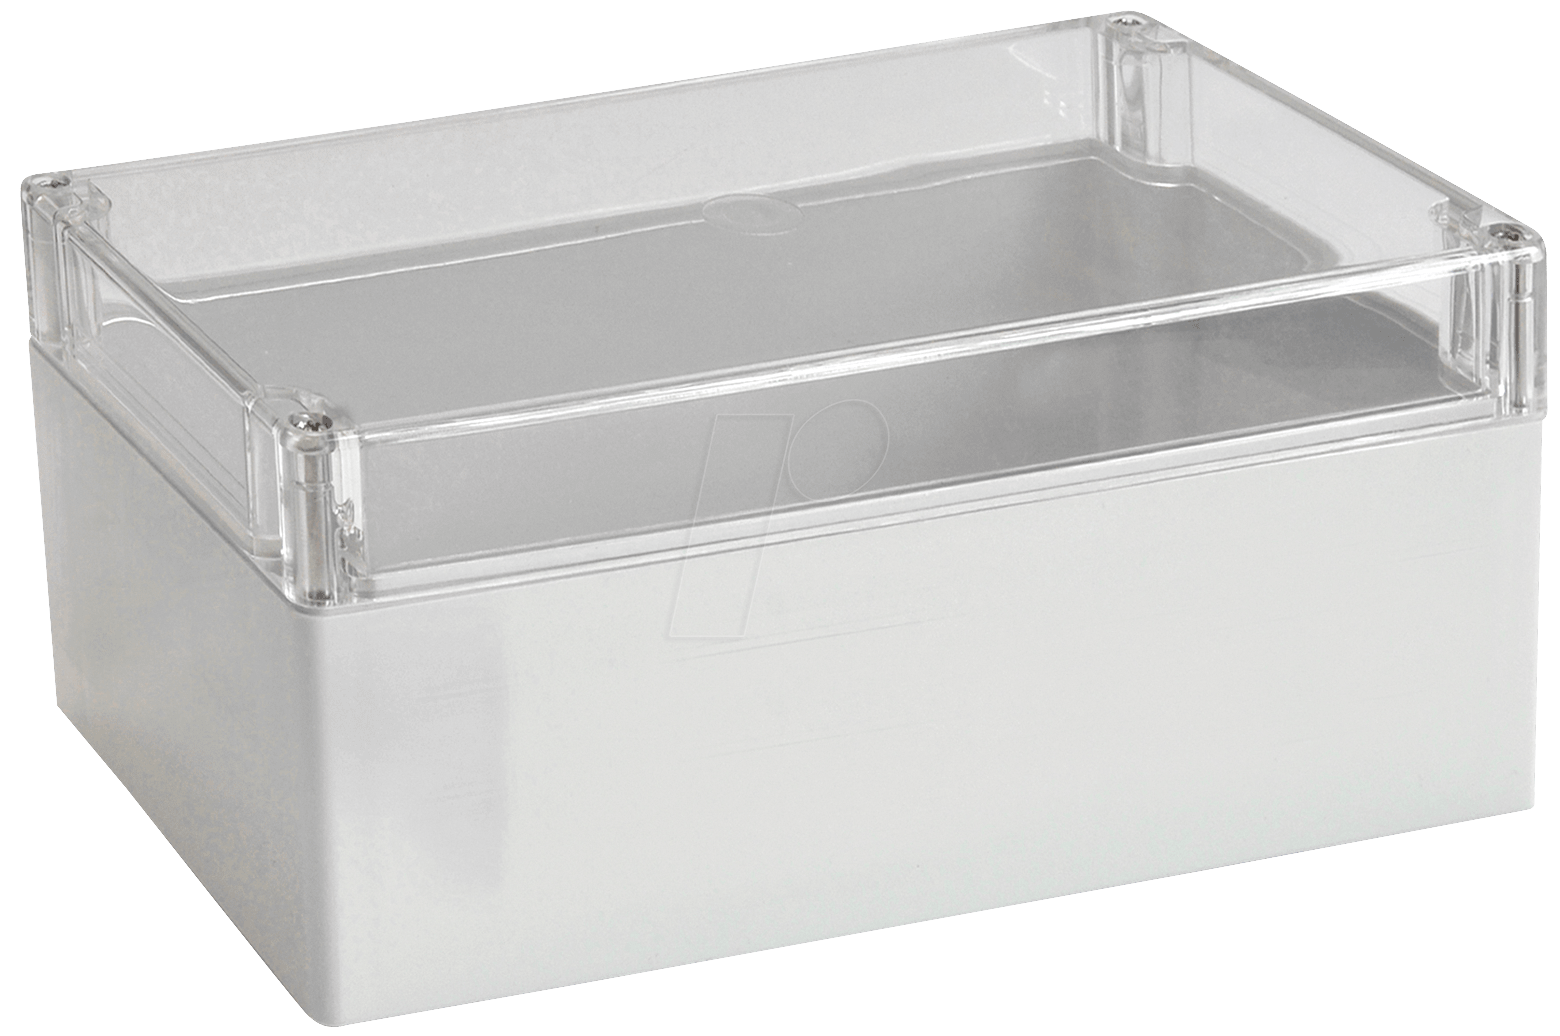 Bopla M 223 G Polycarbonate Box With Clear Lid